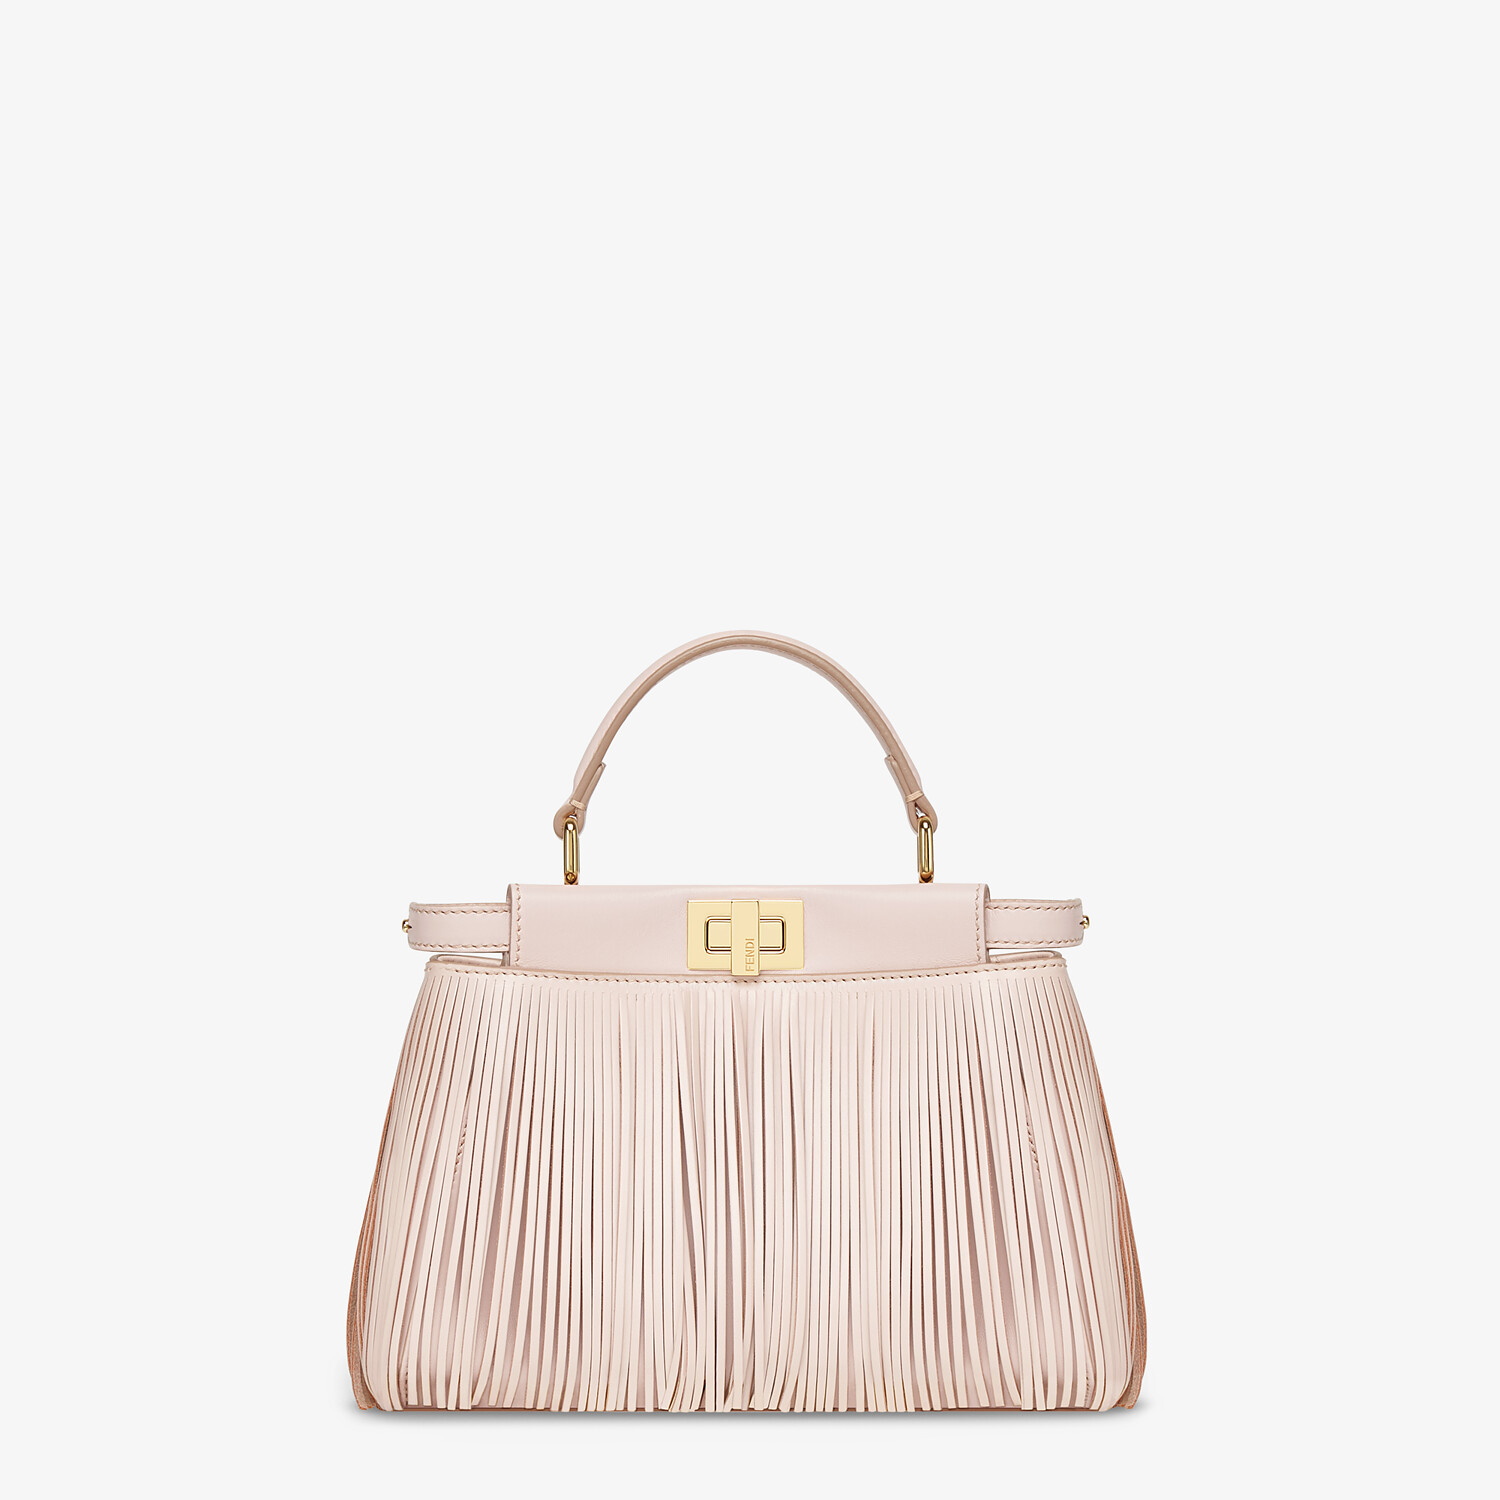 FENDI PEEKABOO ICONIC MINI - Pink leather bag with fringes - view 1 detail